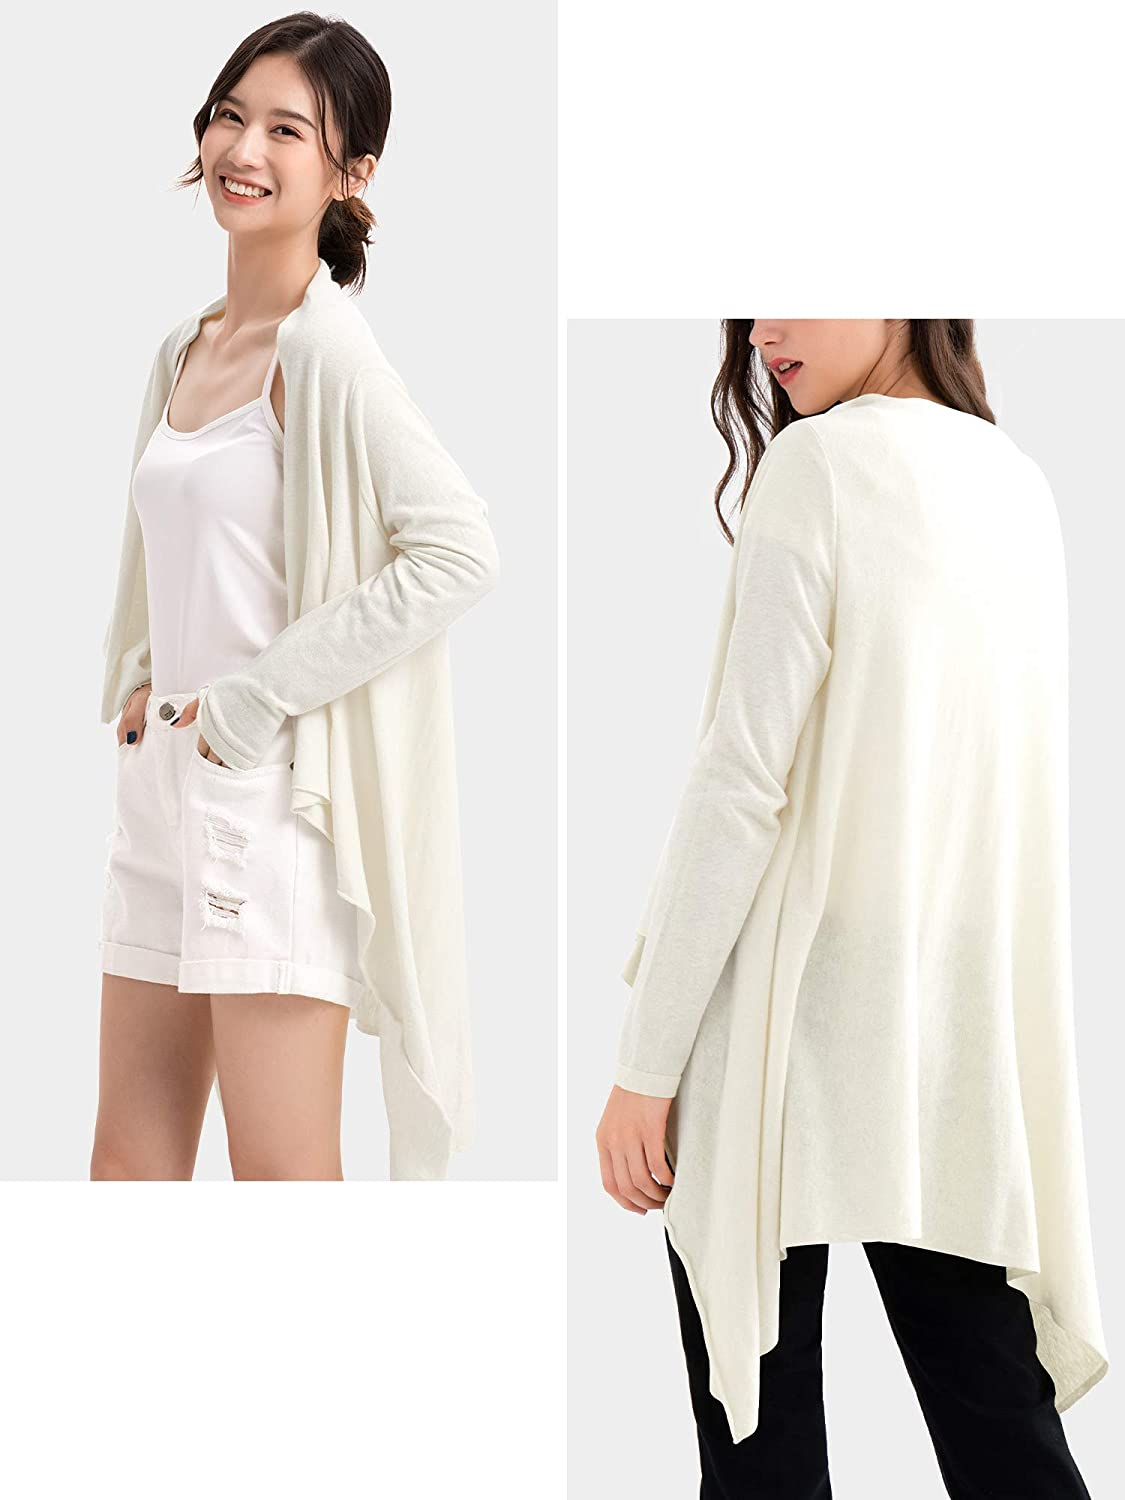 MessBebe Cardigans for Women Knit Lightweight Open Front Cardigans Kimono Waterfall Cardigans Ladies Long Shawl